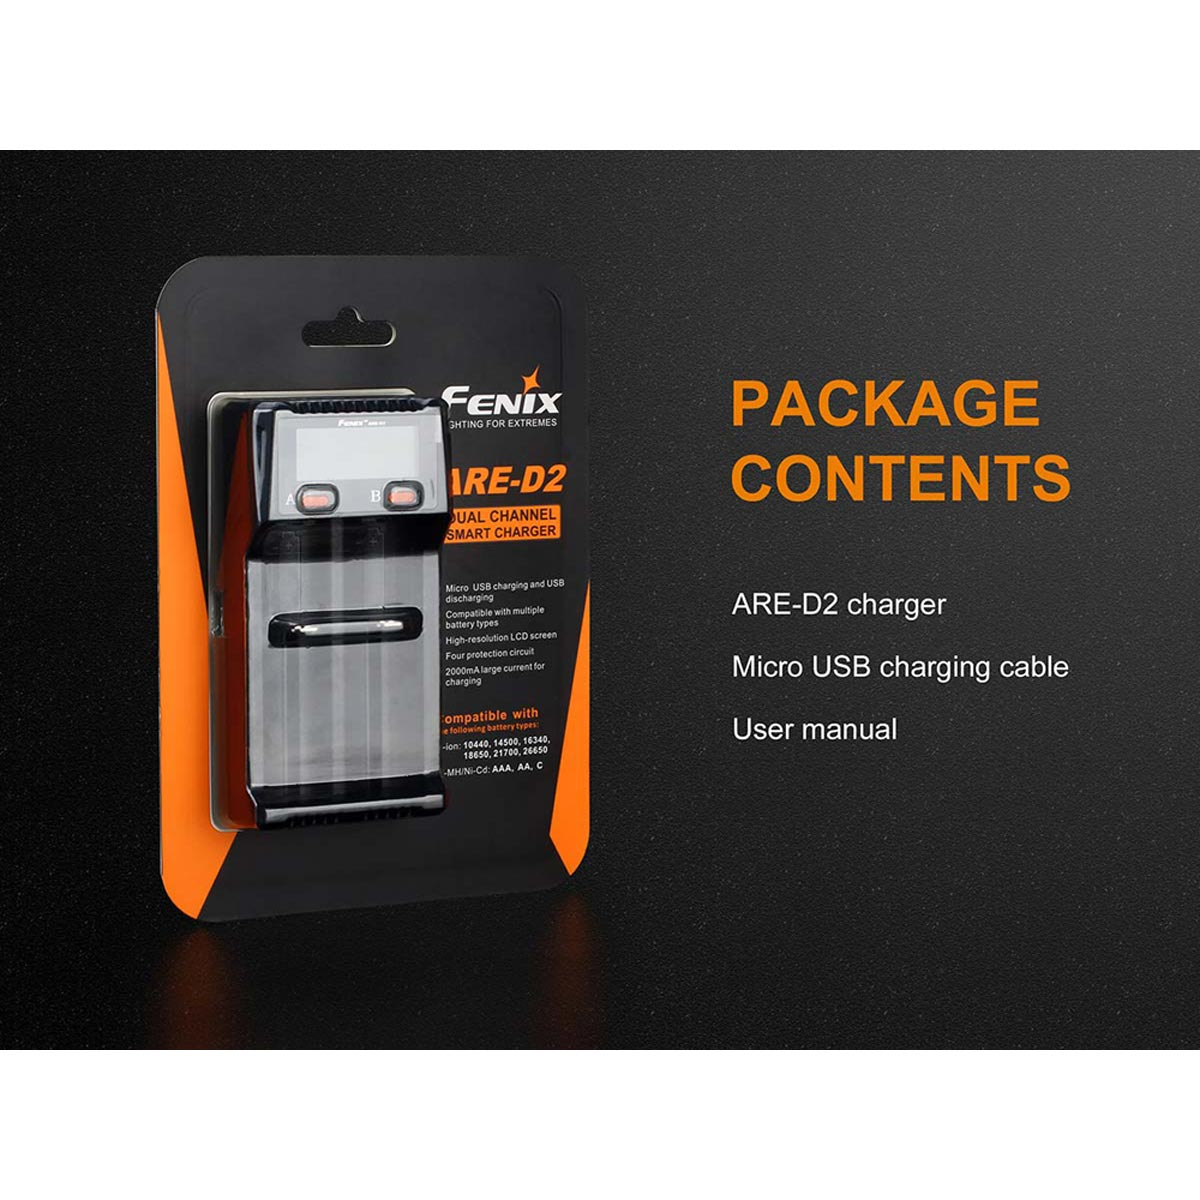 Fenix ARE-D2 Dual-Slot Battery Charger for Li-ion / Ni-MH / Ni-Cd Rechargeable Batteries & USB Charging